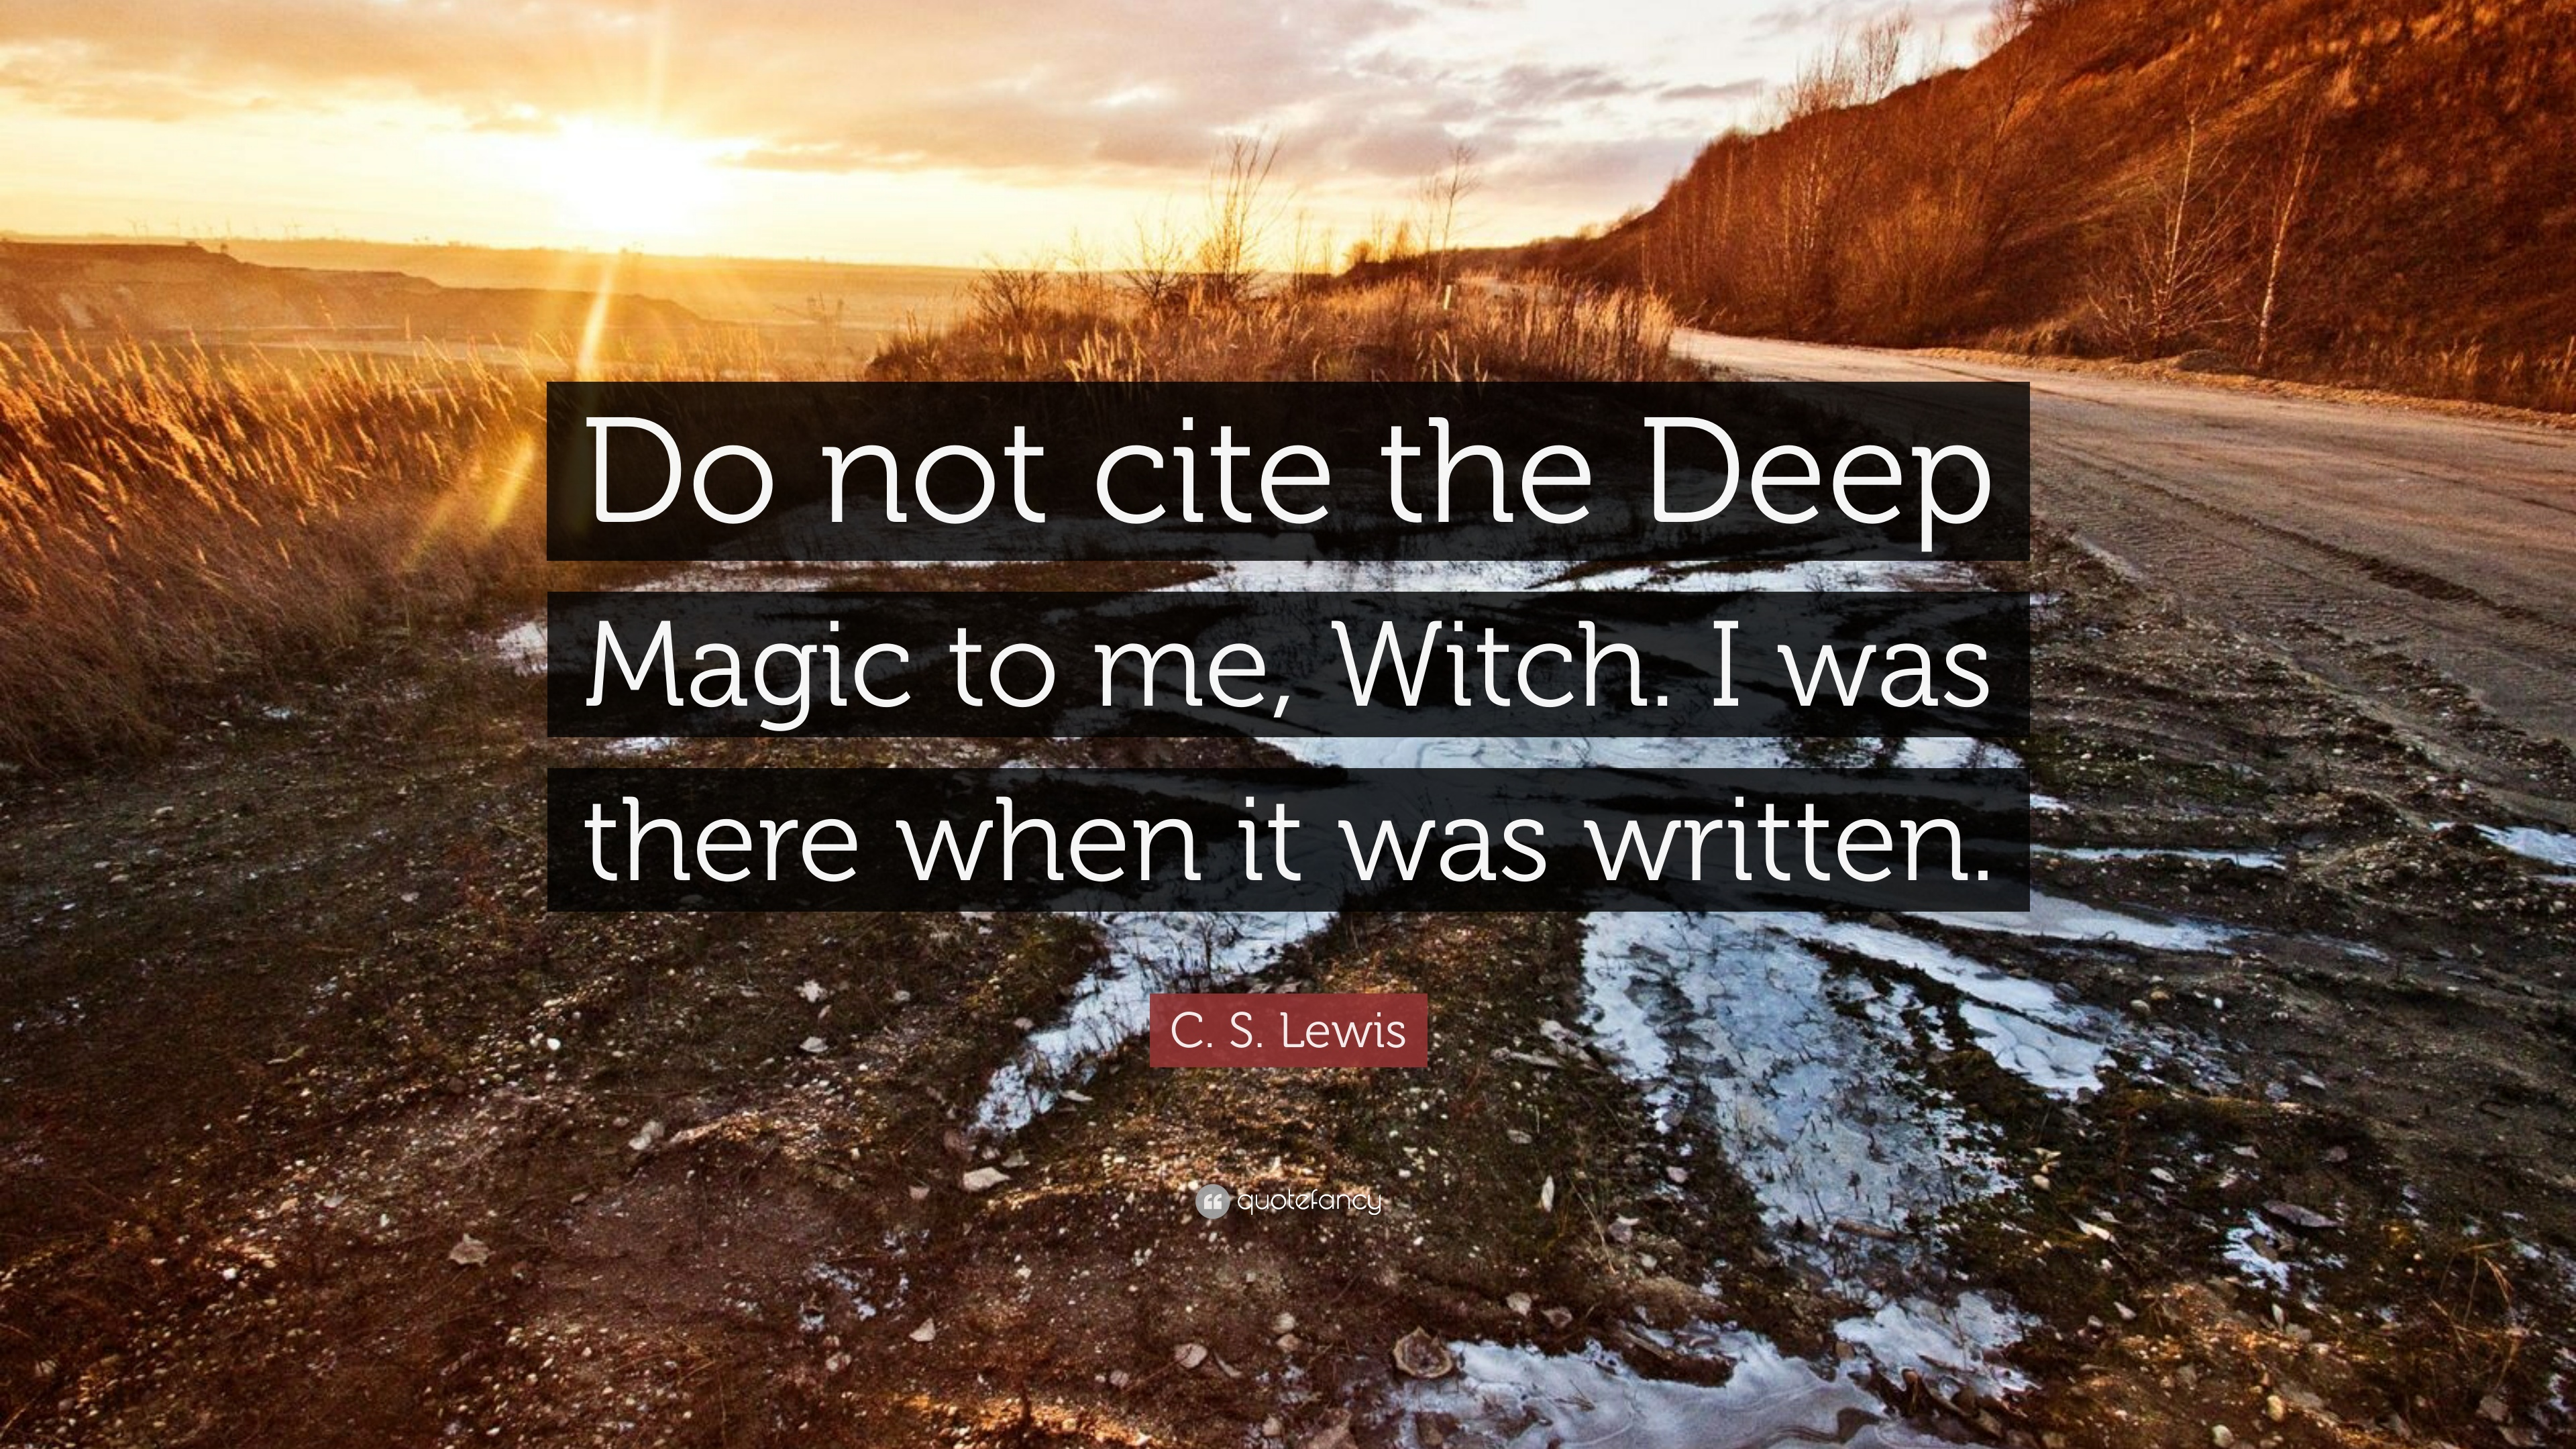 C S Lewis Quote Do Not Cite The Deep Magic To Me Witch I Was